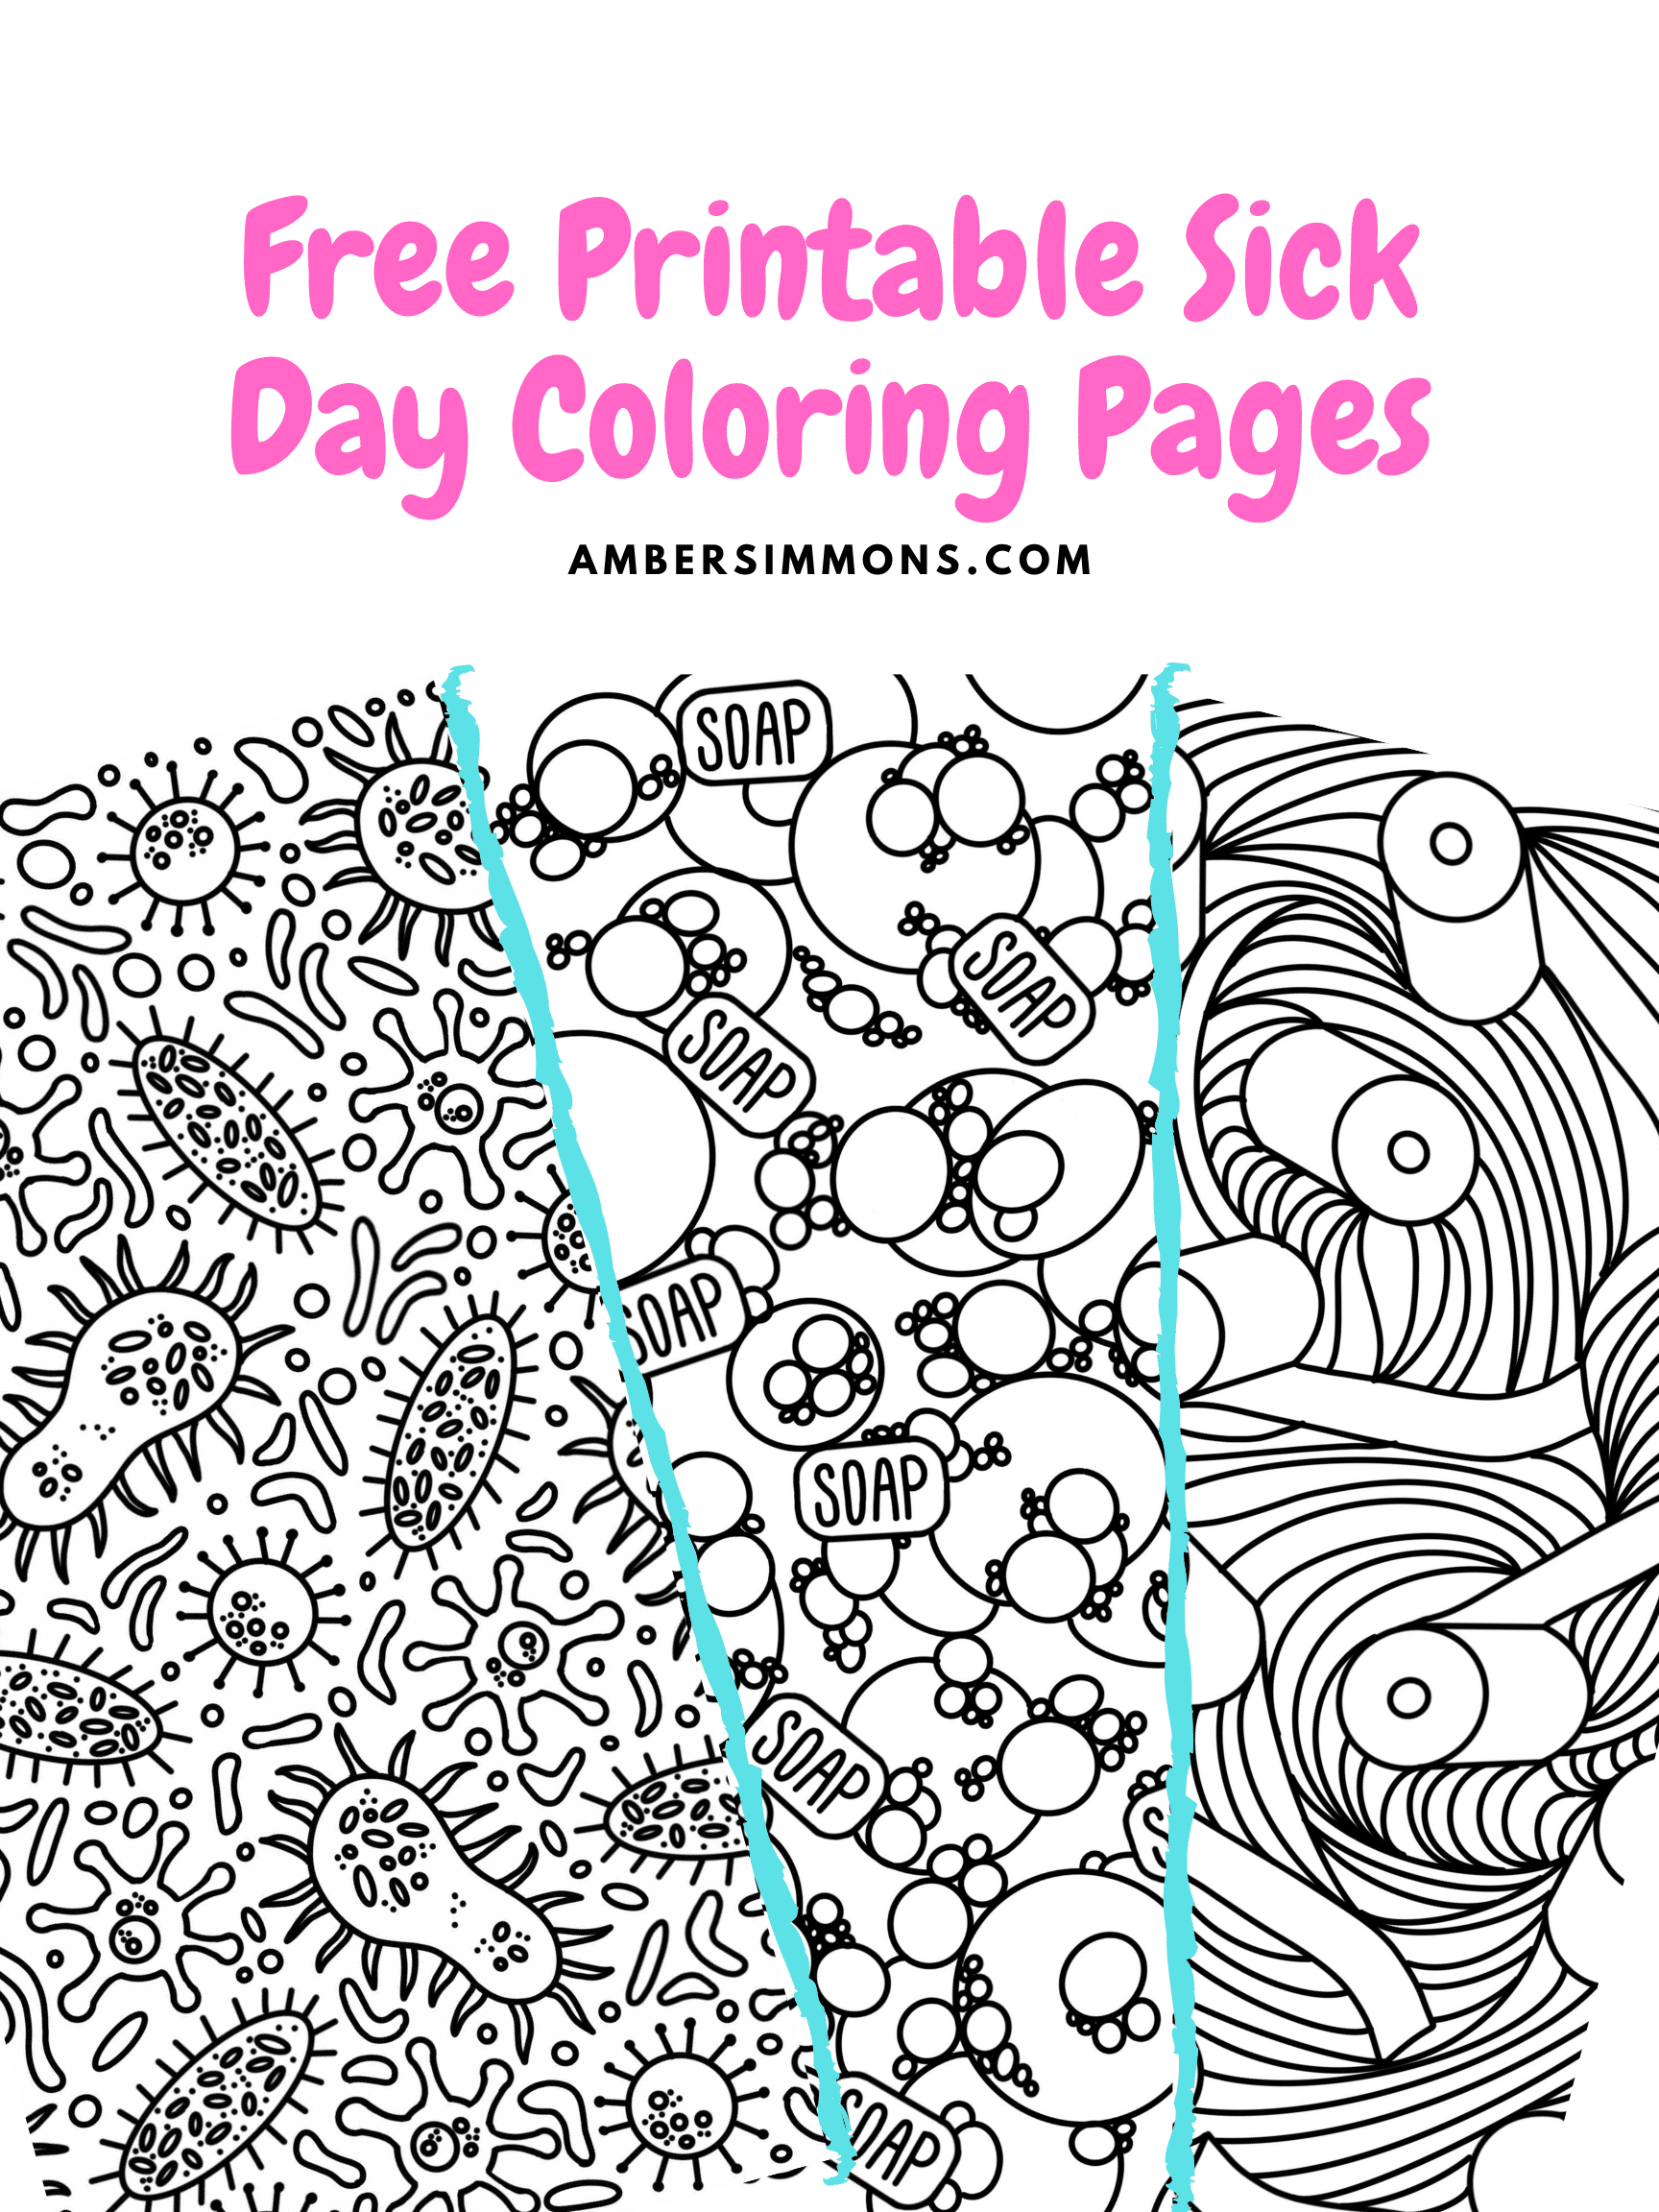 Top 20 Free Printable Mother's Day Coloring Pages Online | Mothers ... | 2304x1728